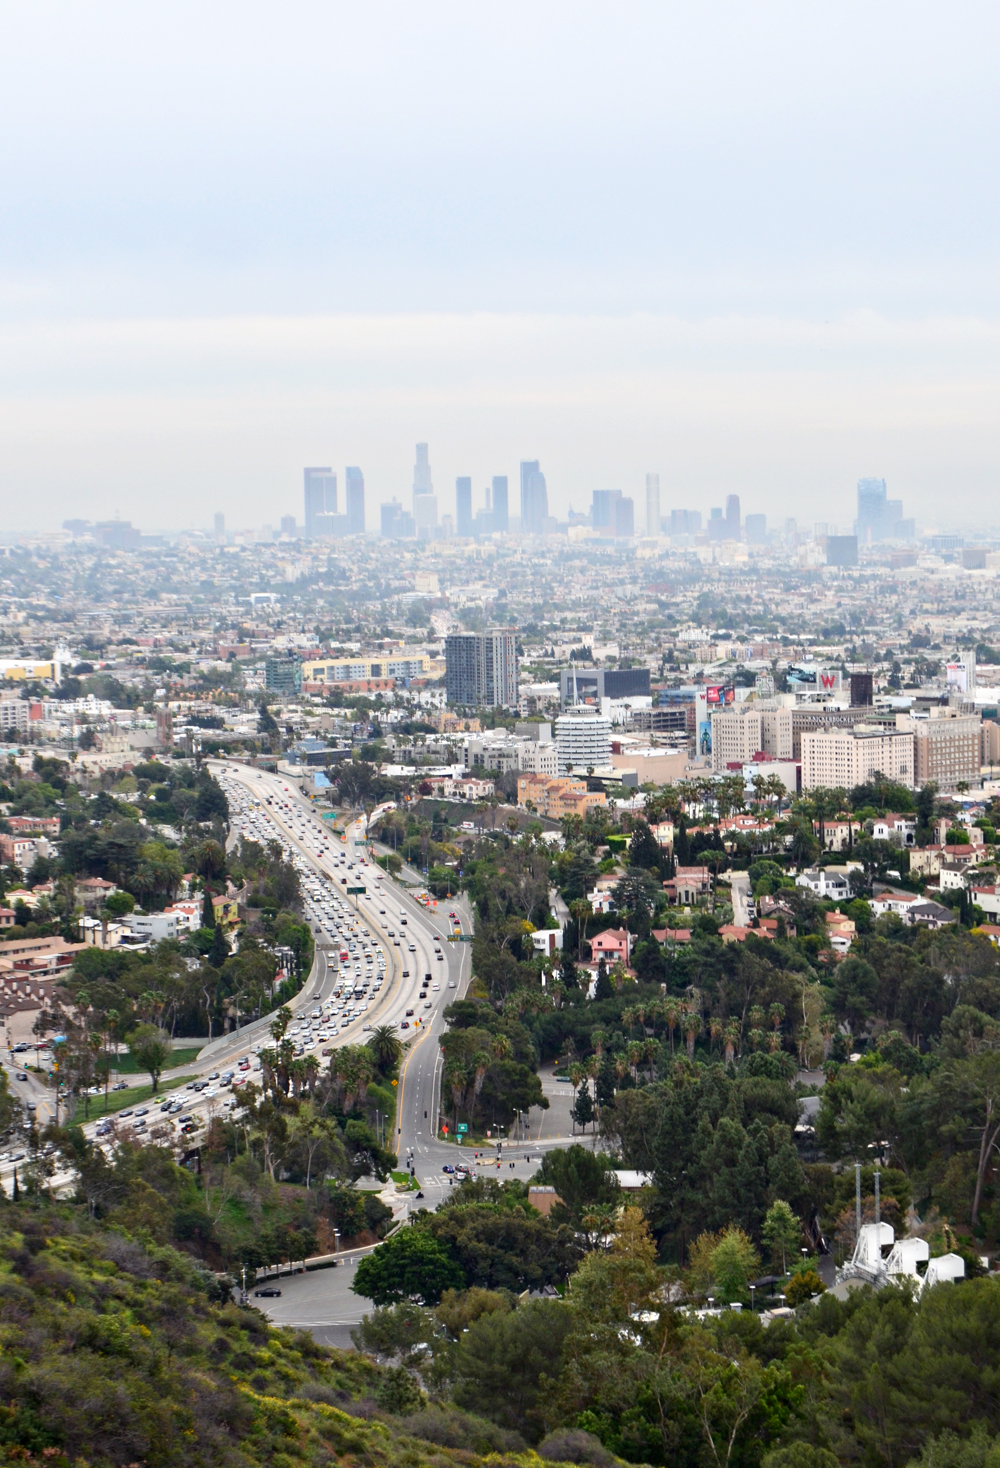 Los Angeles // Hollywood Bowl Overlook on Mulholland Drive